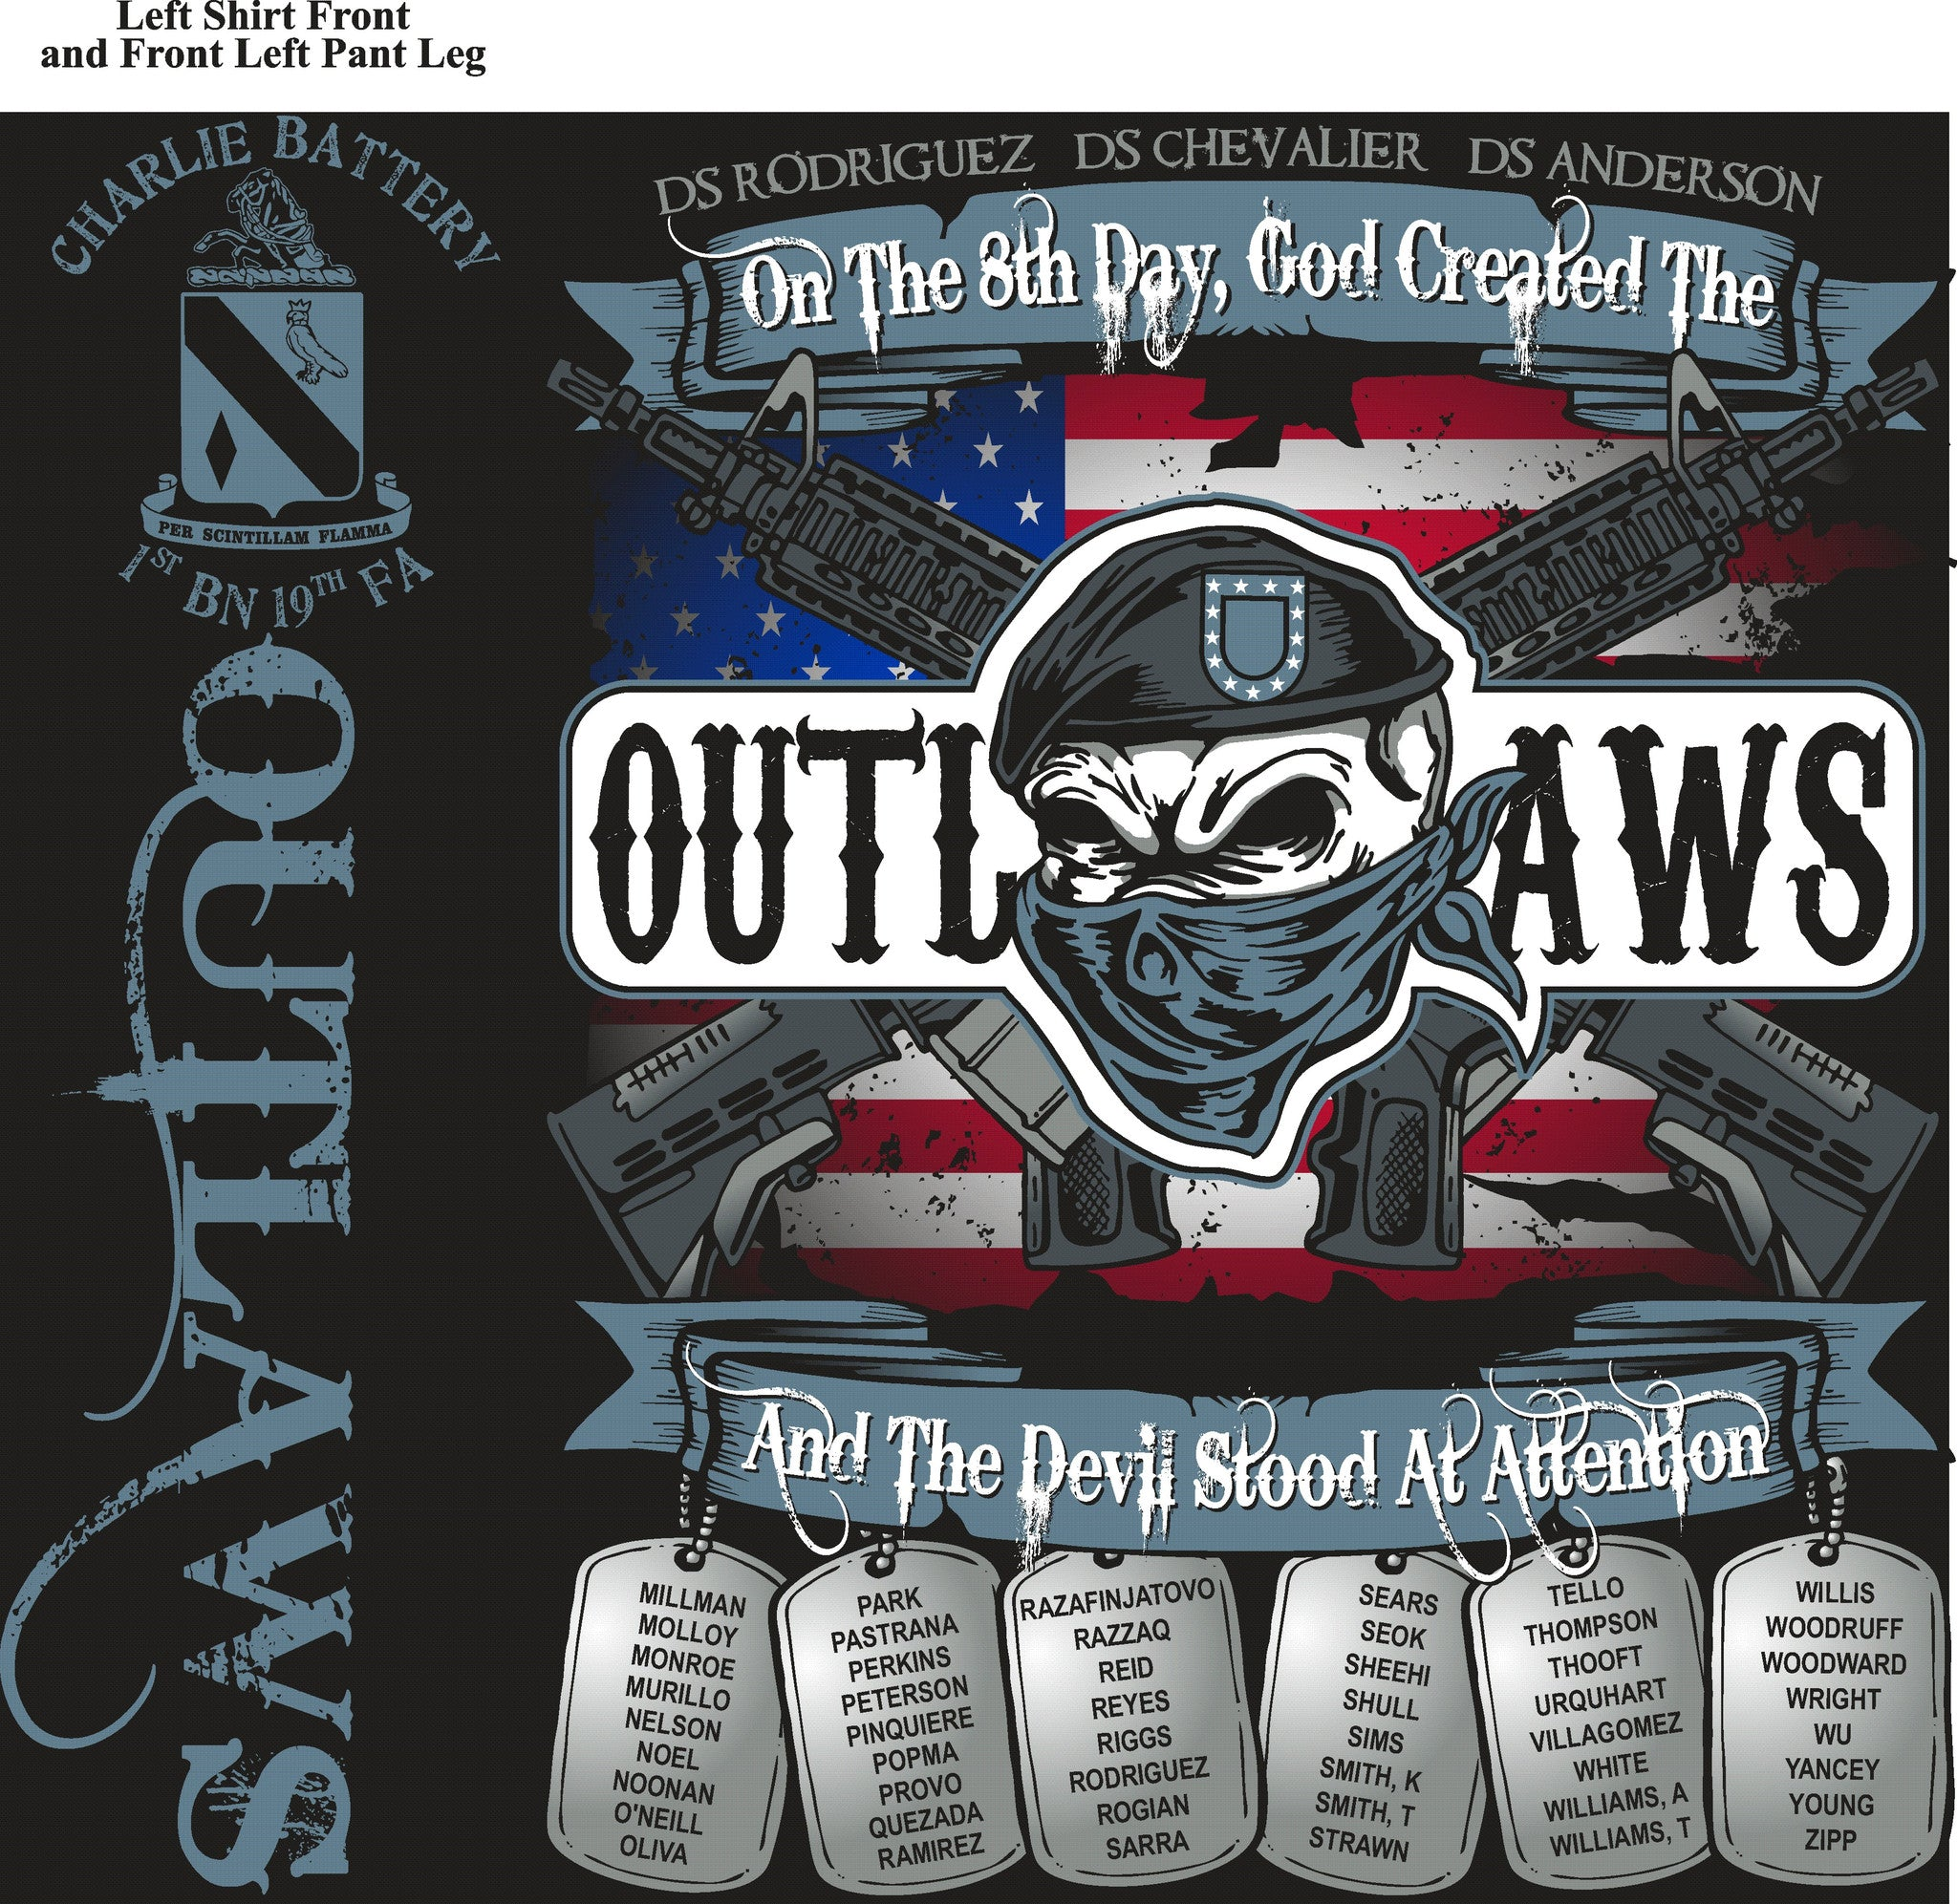 PLATOON SHIRTS (digital) CHARLIE 1st 19th OUTLAWS NOV 2015